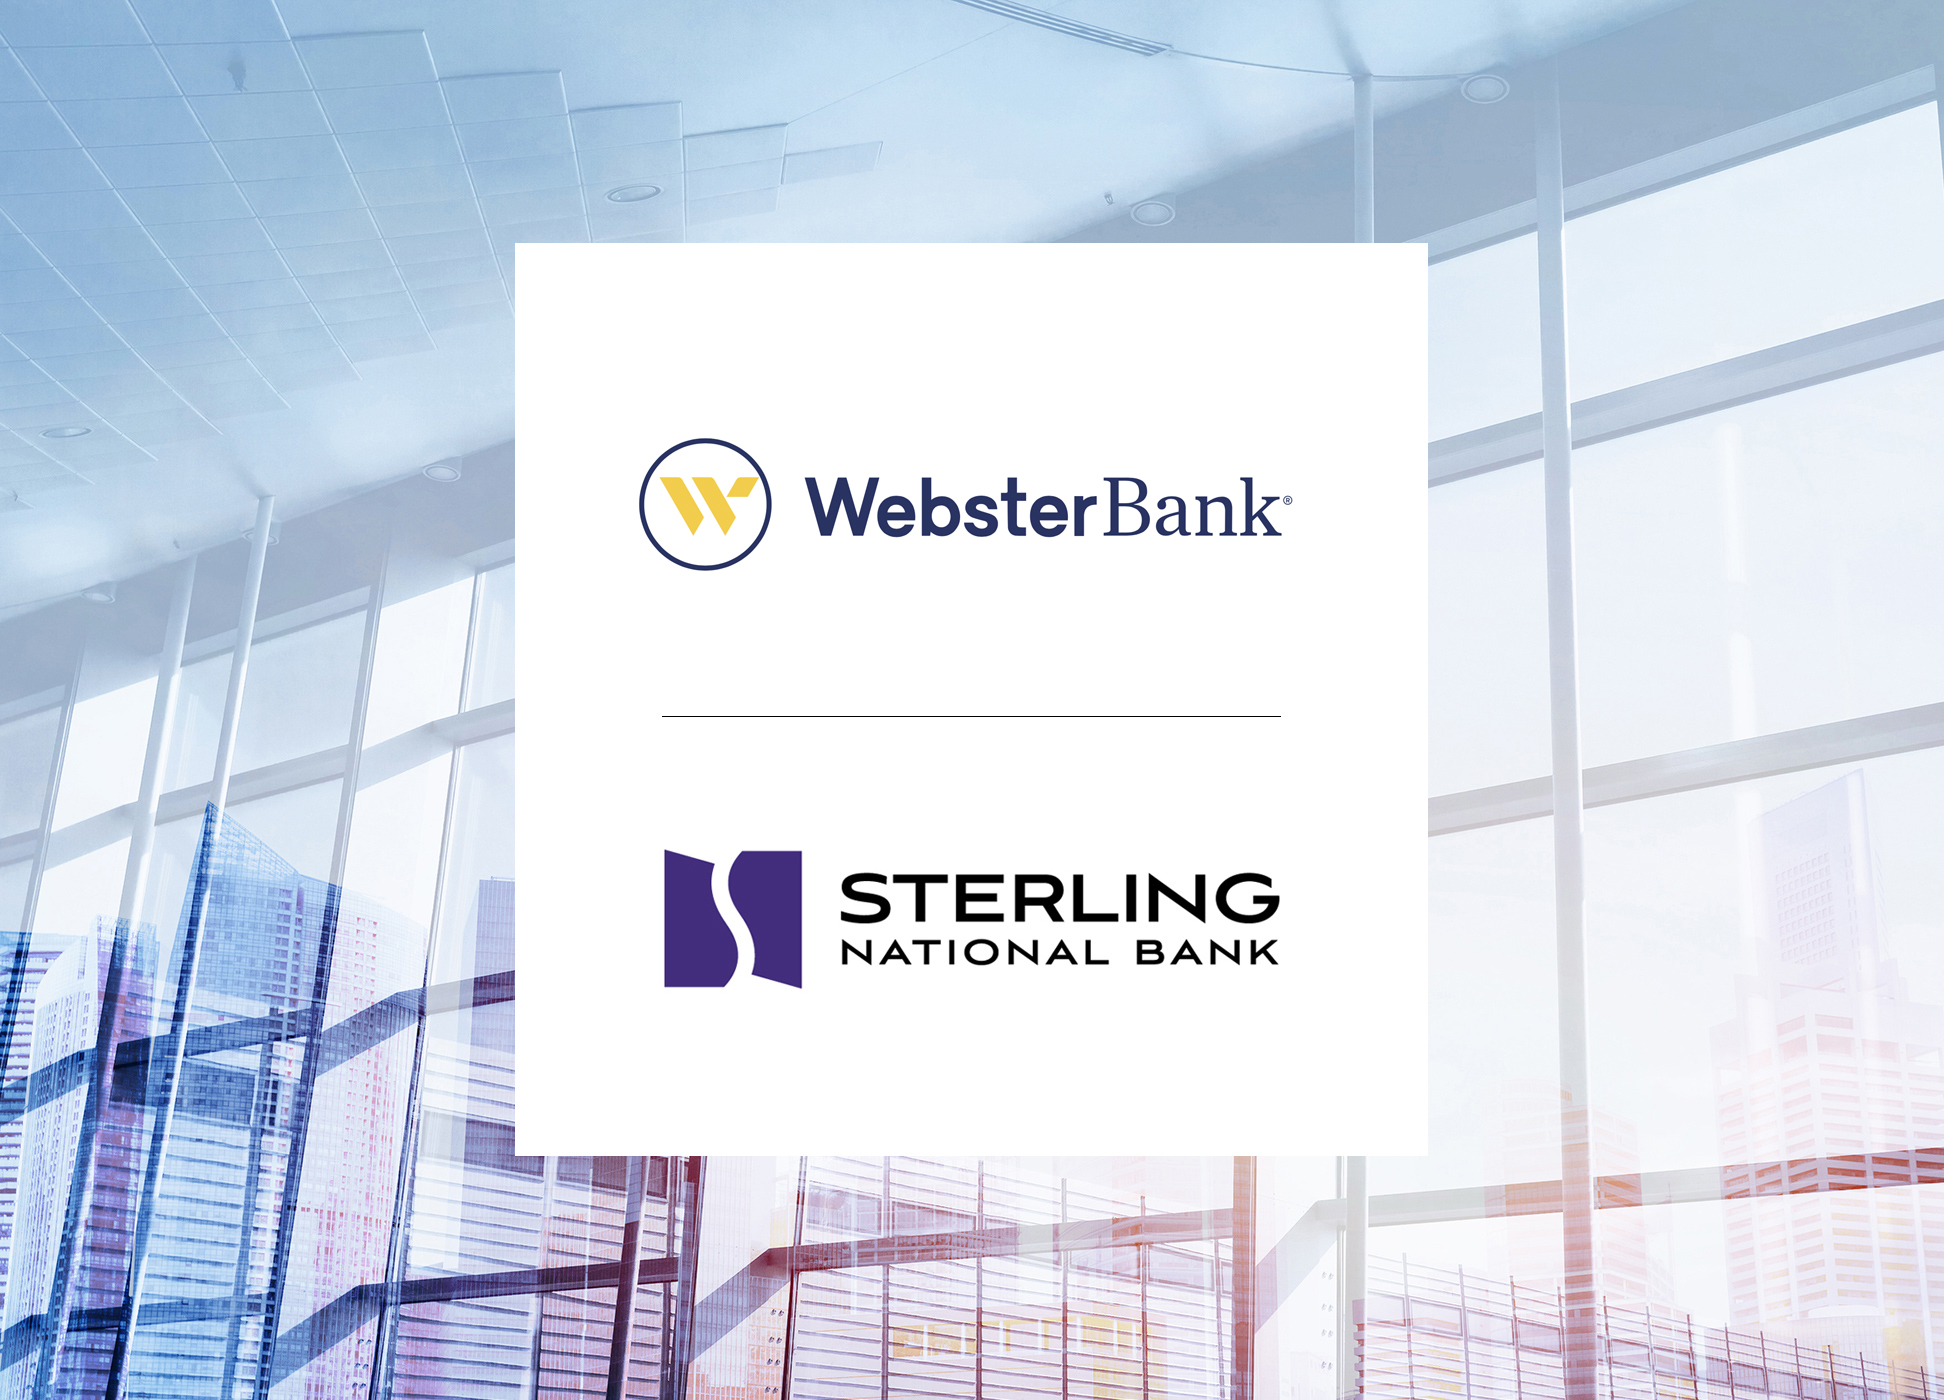 sterling national bank and webster bank logos